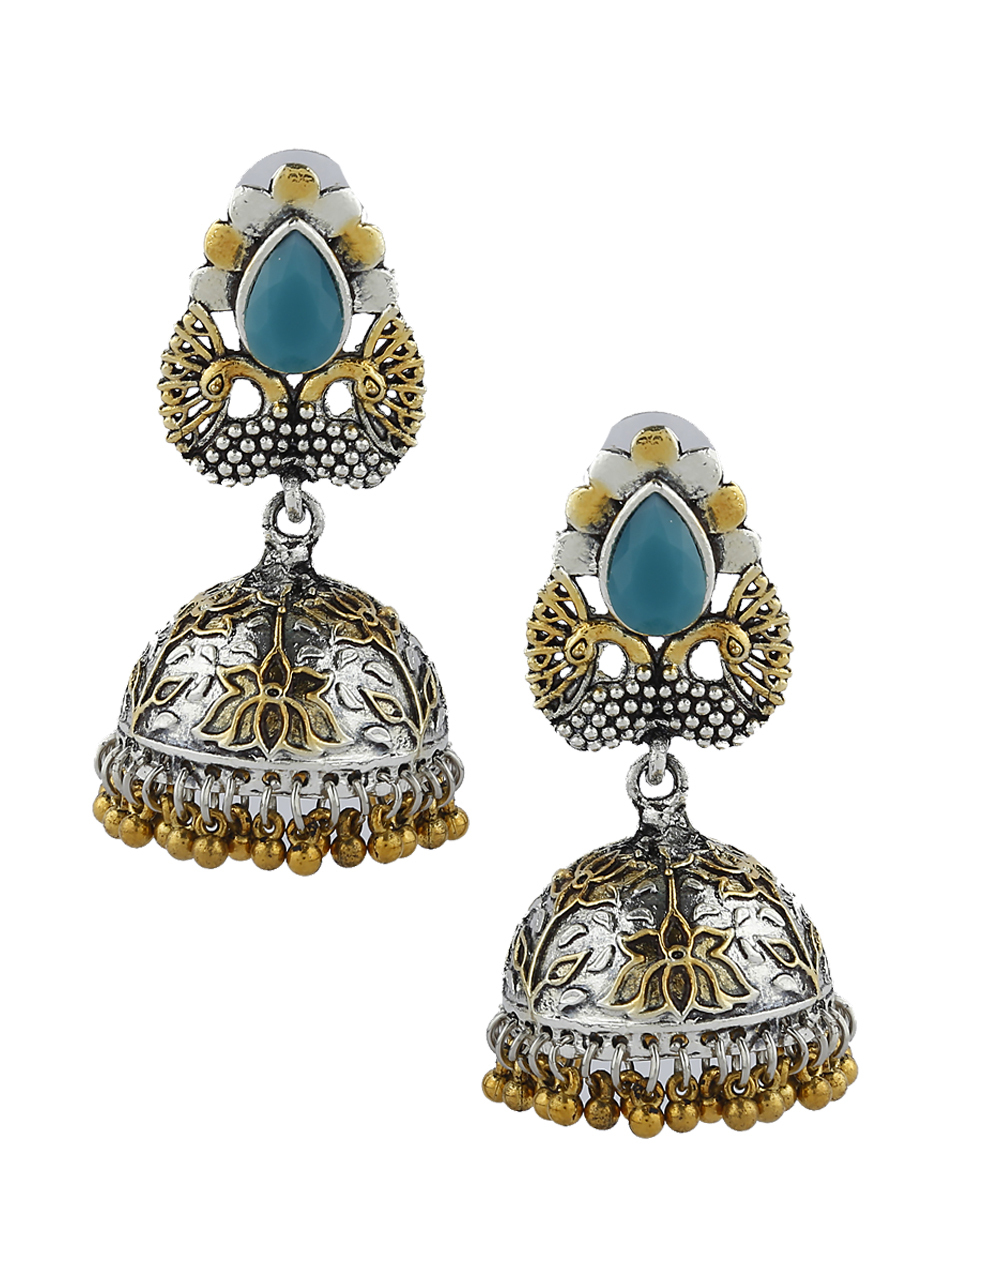 Simple Blue Colour Silver and Golden Finish Oxidized Earrings Online.